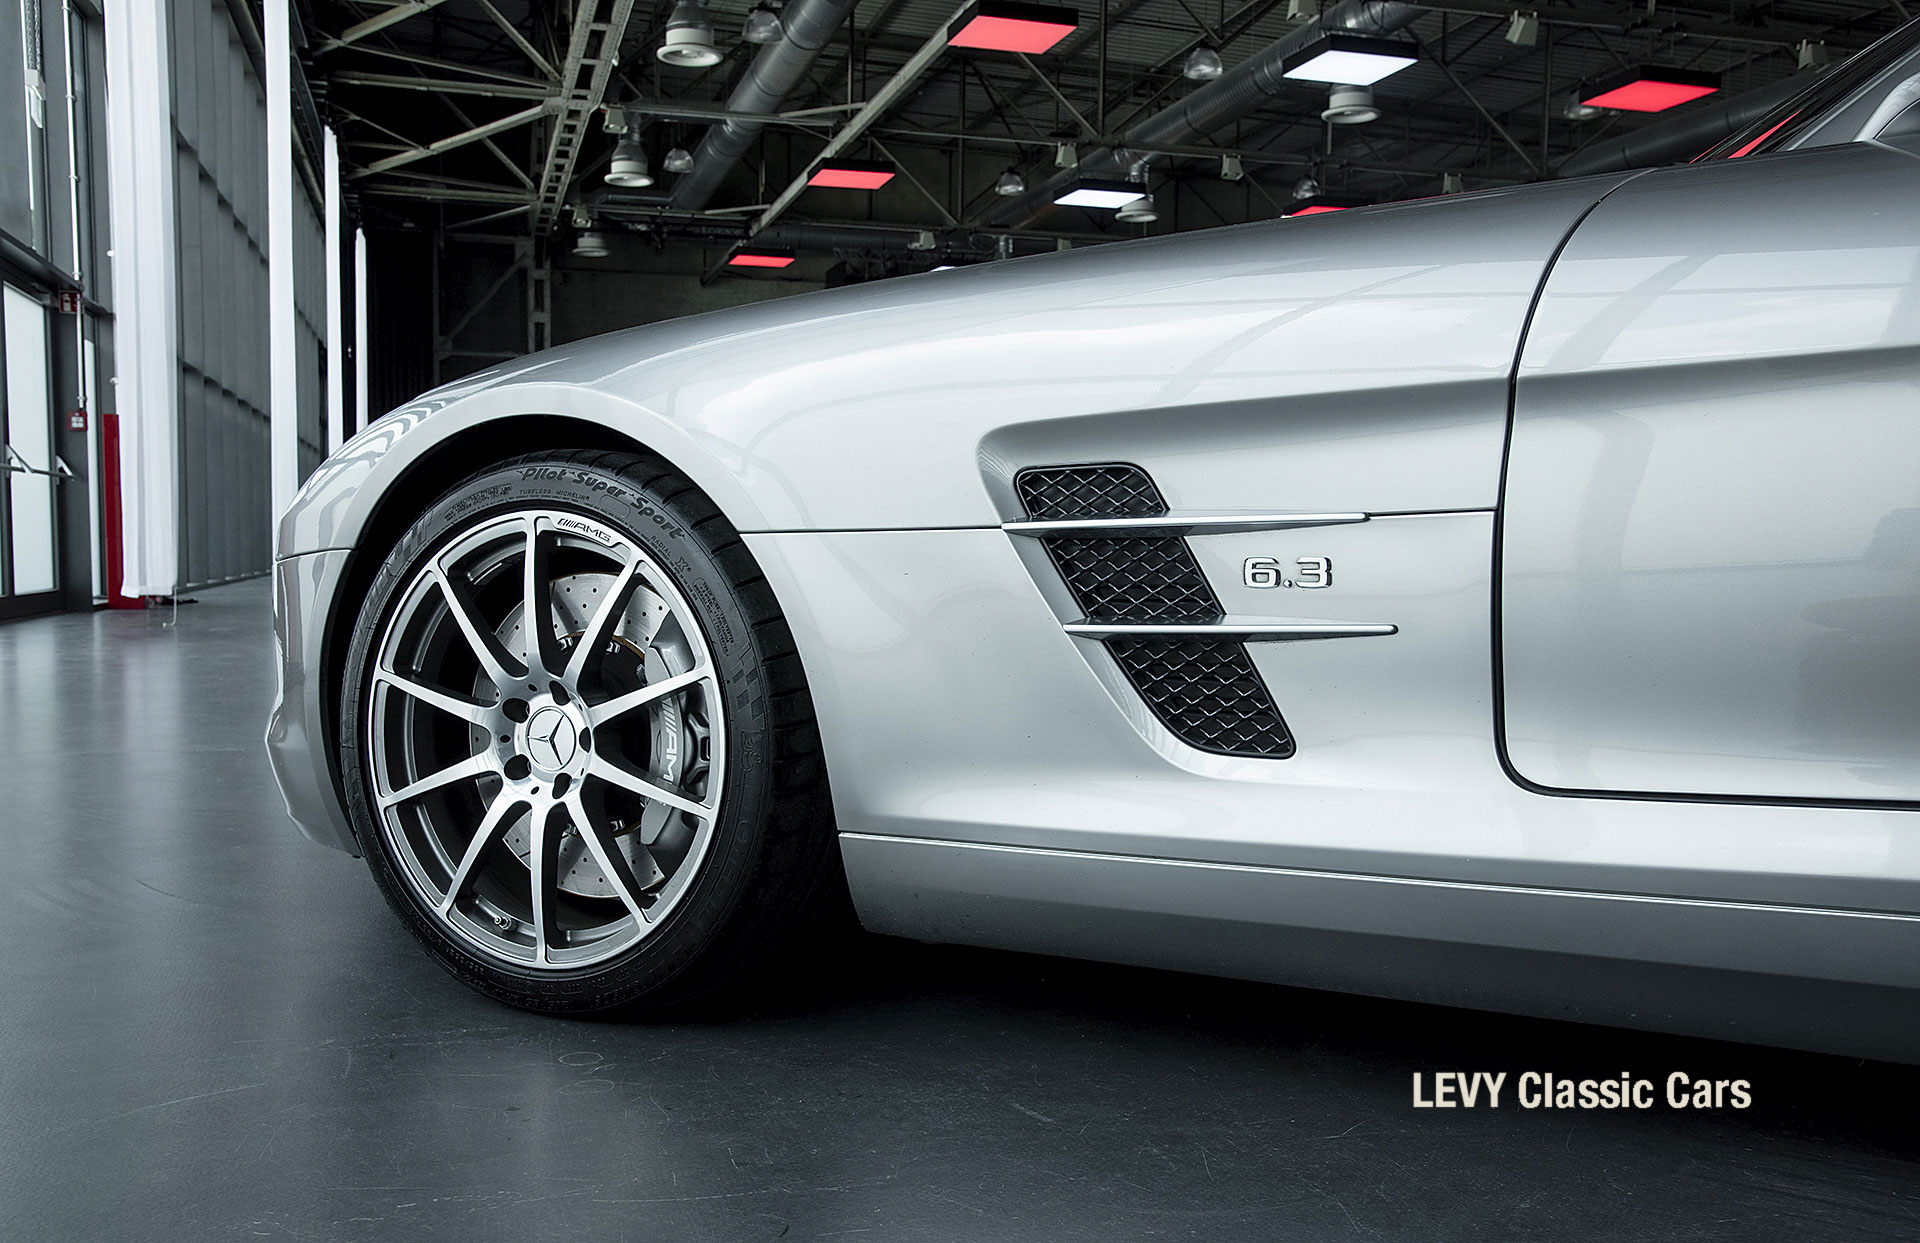 MB SLS AMG 6,3 Coupe 05633 035